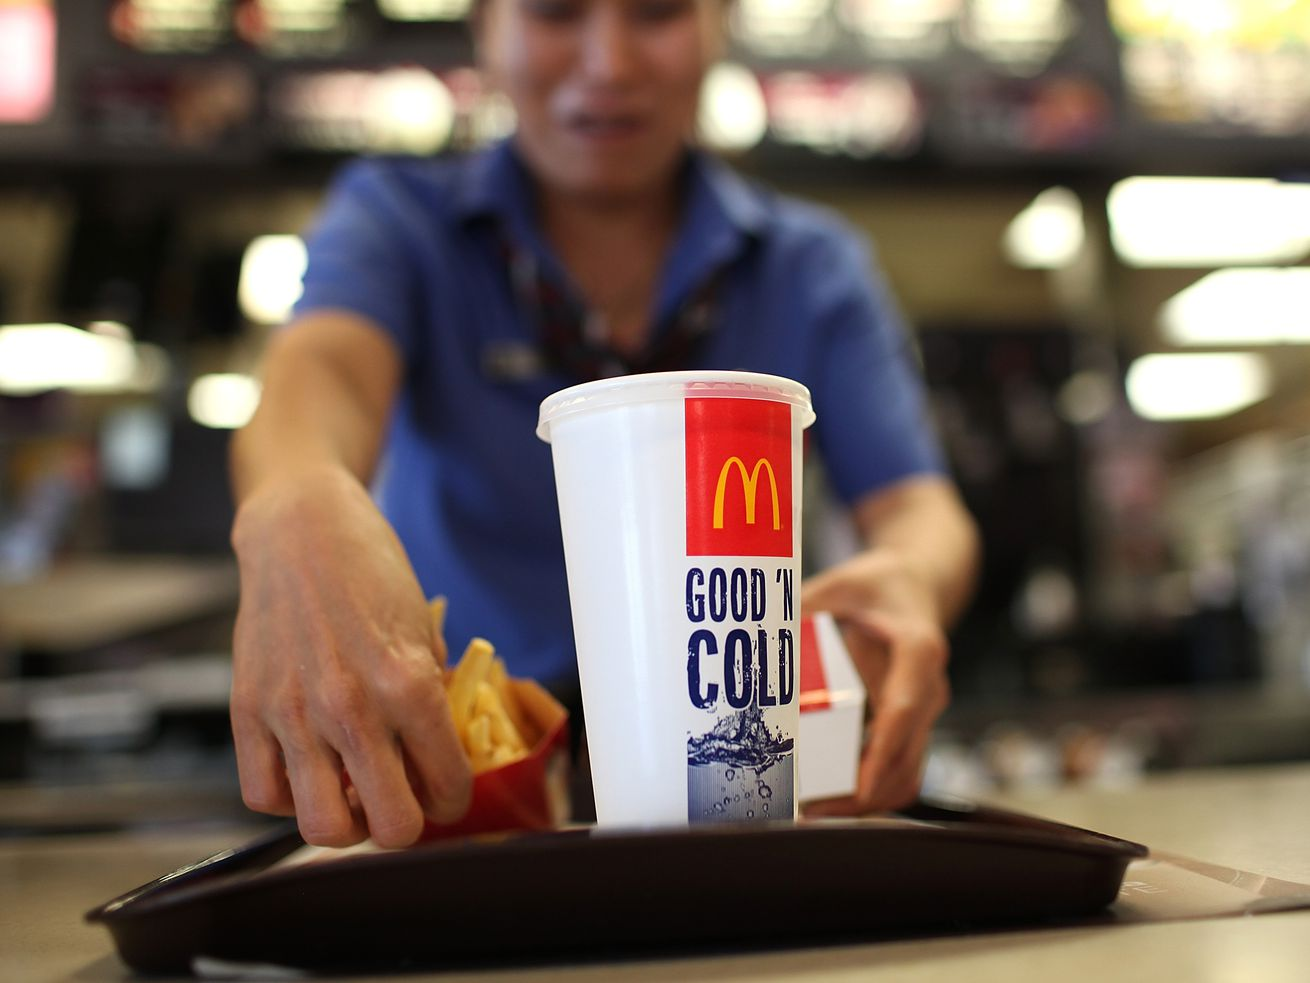 A McDonald's worker preparing an order.